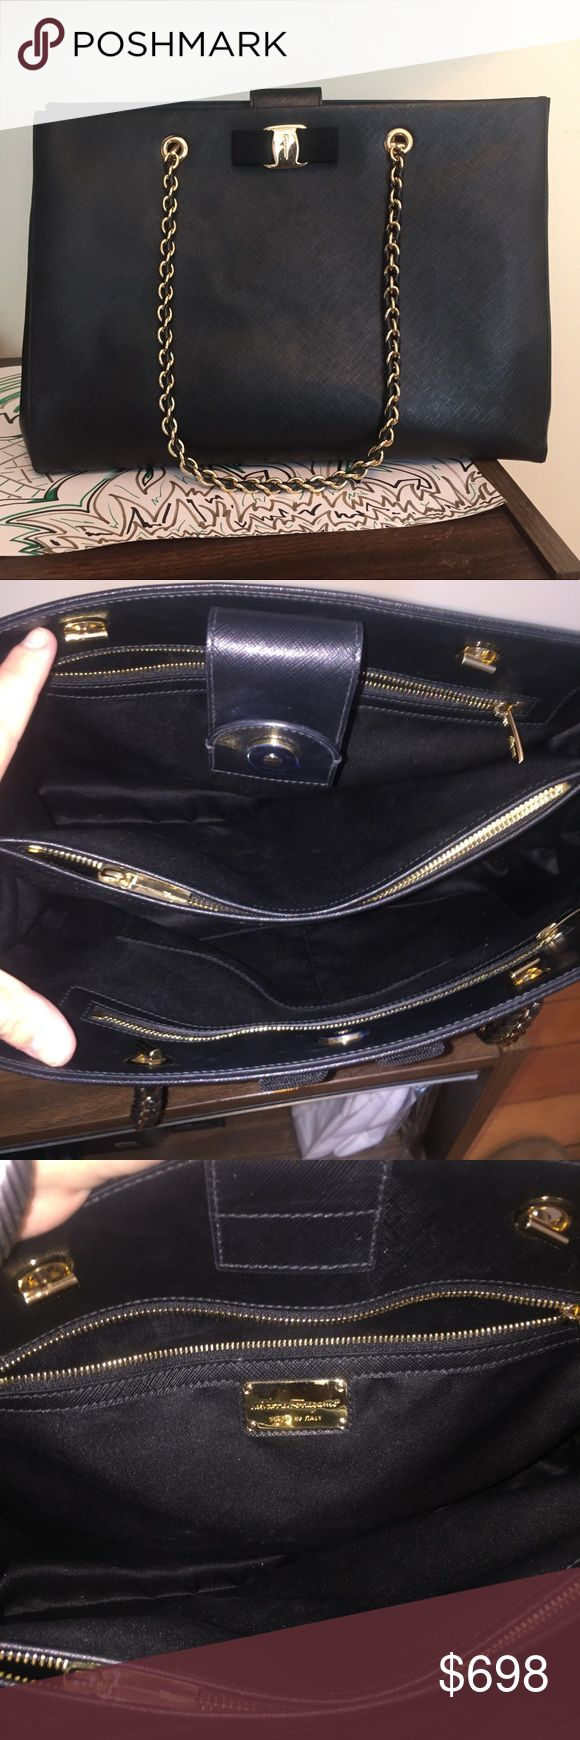 Like new! Salvatore Ferragamo black bag AUTHENTIC!! Like new, no signs of wear inside or out. Black saffiano leather Salvatore Ferragamo purse with three compartments inside, gold and black chain handles. Gold emblem on outside with ribbon. Originally purchased for $1,450+ tax. Last two photos are stock images. Check out my closet for more designer items ...Tags; Prada, Gucci, Christian louboutin, Louis Vuitton, Celine, Hermes, Tory burch, Burberry, jimmy Choo, Dior Salvatore Ferragamo Bags…